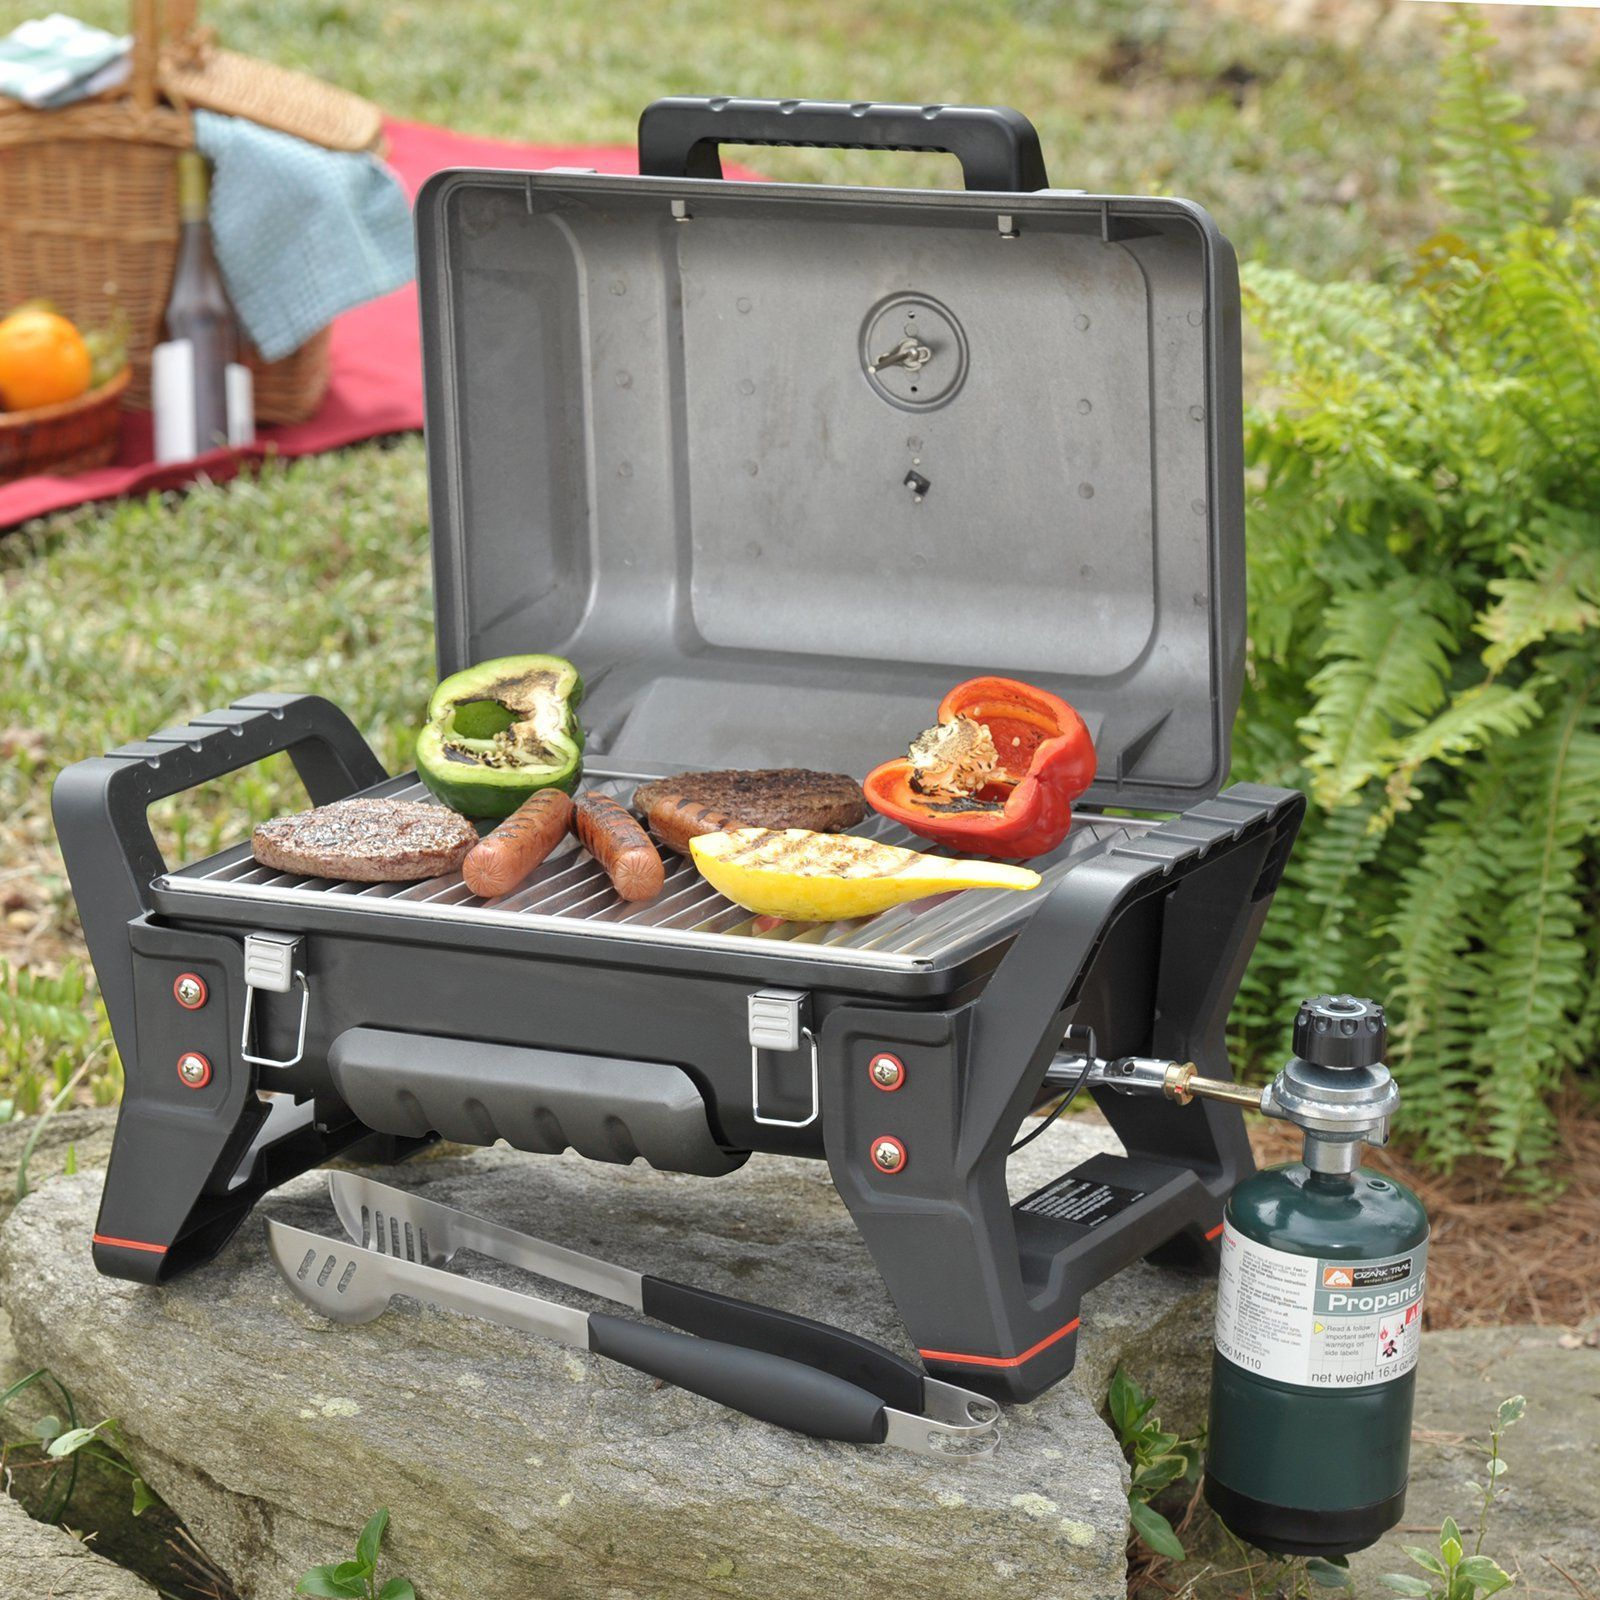 Delightful Char Broil TRU Infrared Grill2Go X200 Portable Gas Tabletop Grill   12401734